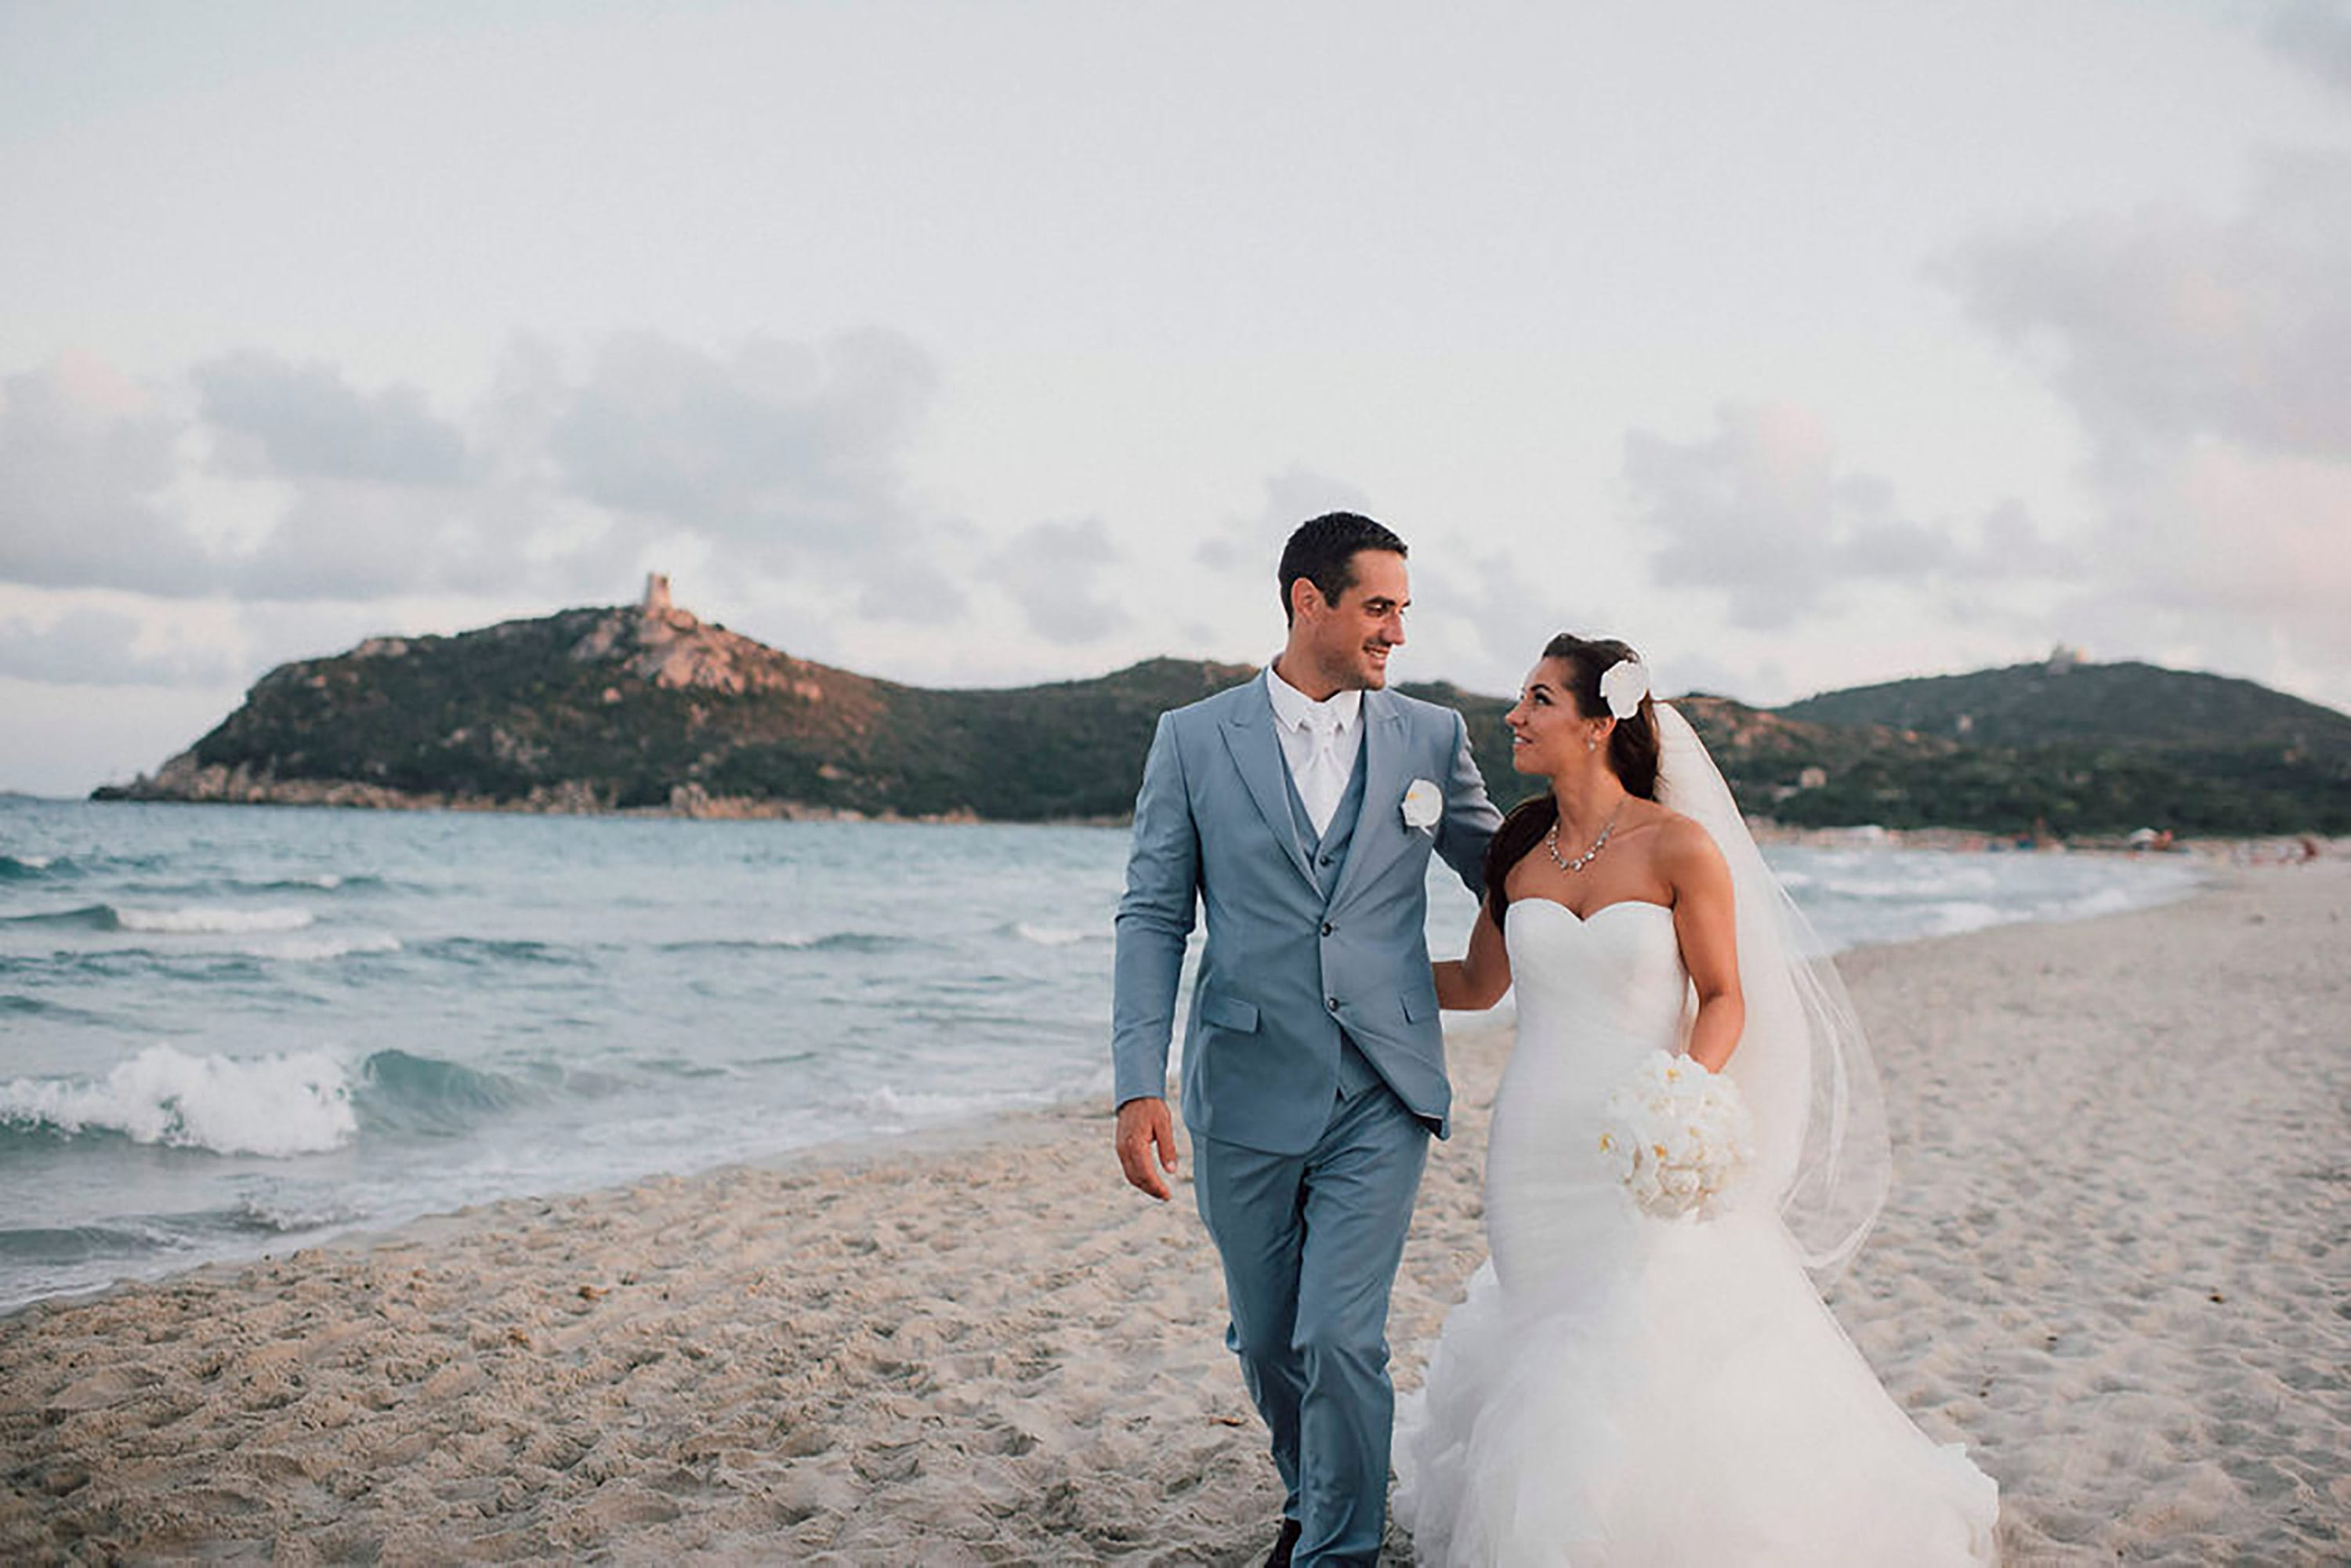 Andrea and Sebastien, wedding on the beach